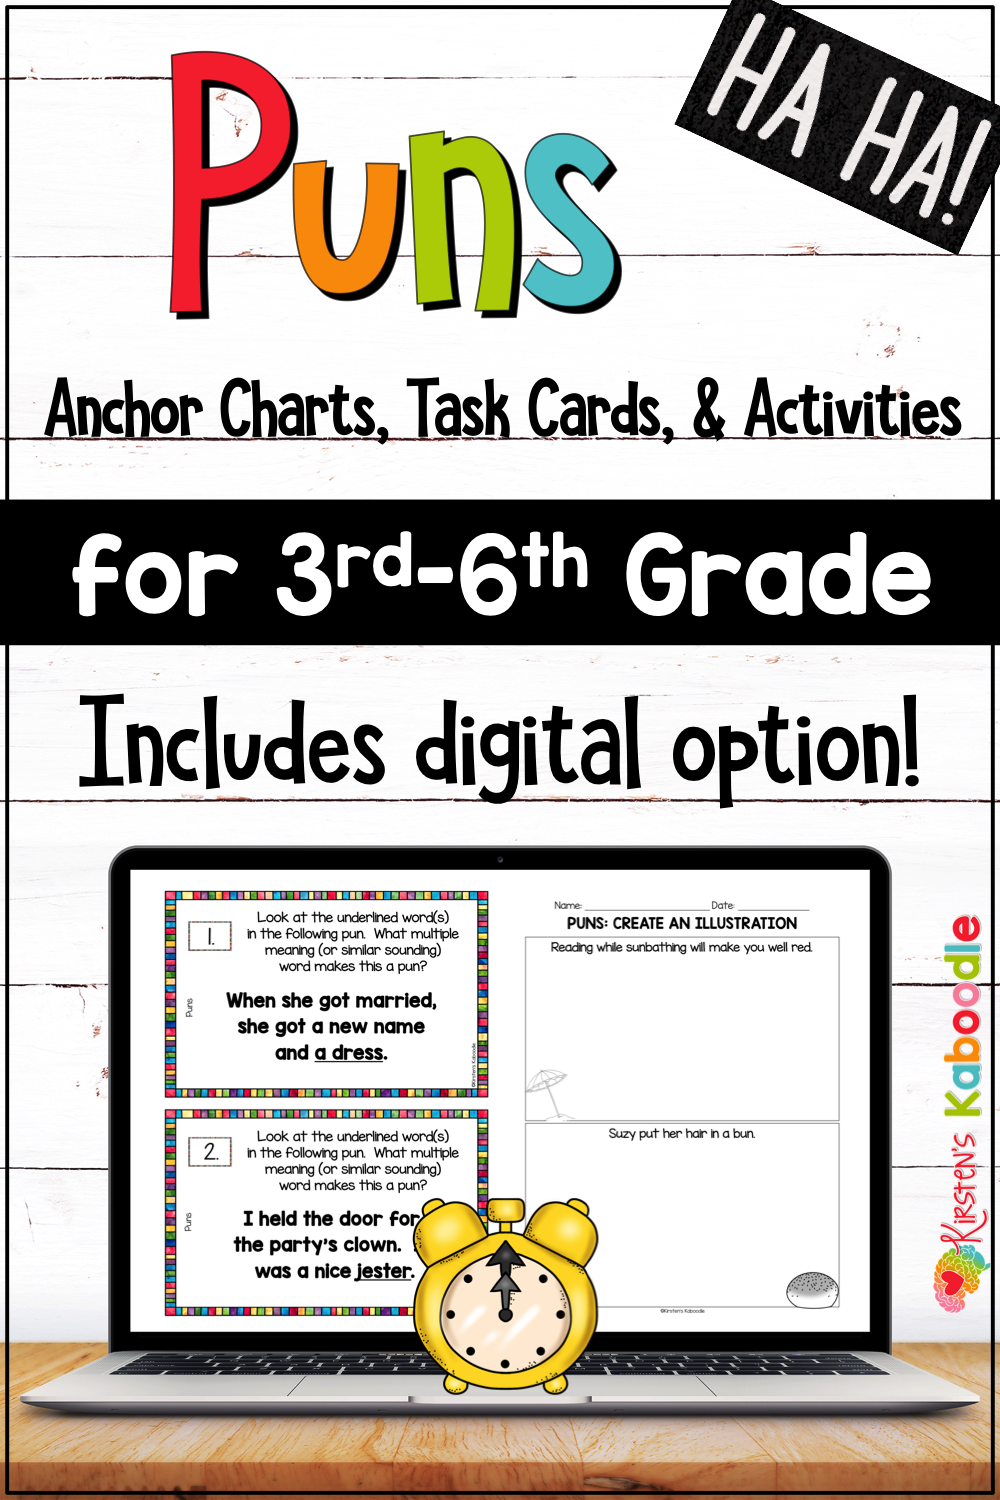 hight resolution of Puns Activities and Task Cards with Digital Option for 3rd